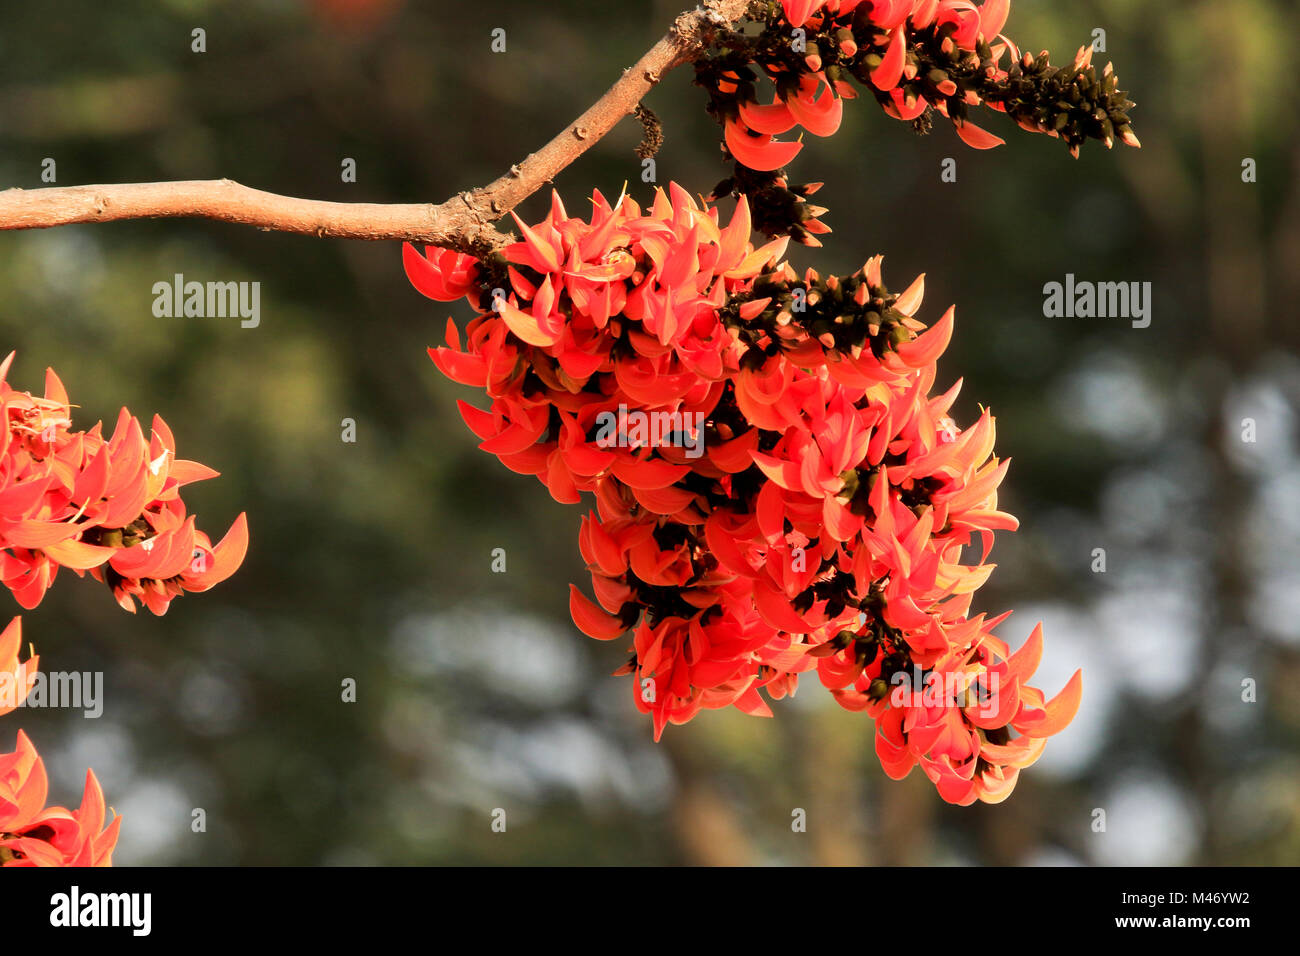 Spring Flower Palash Blooms Flamboyantly Advent Of The Spring In The